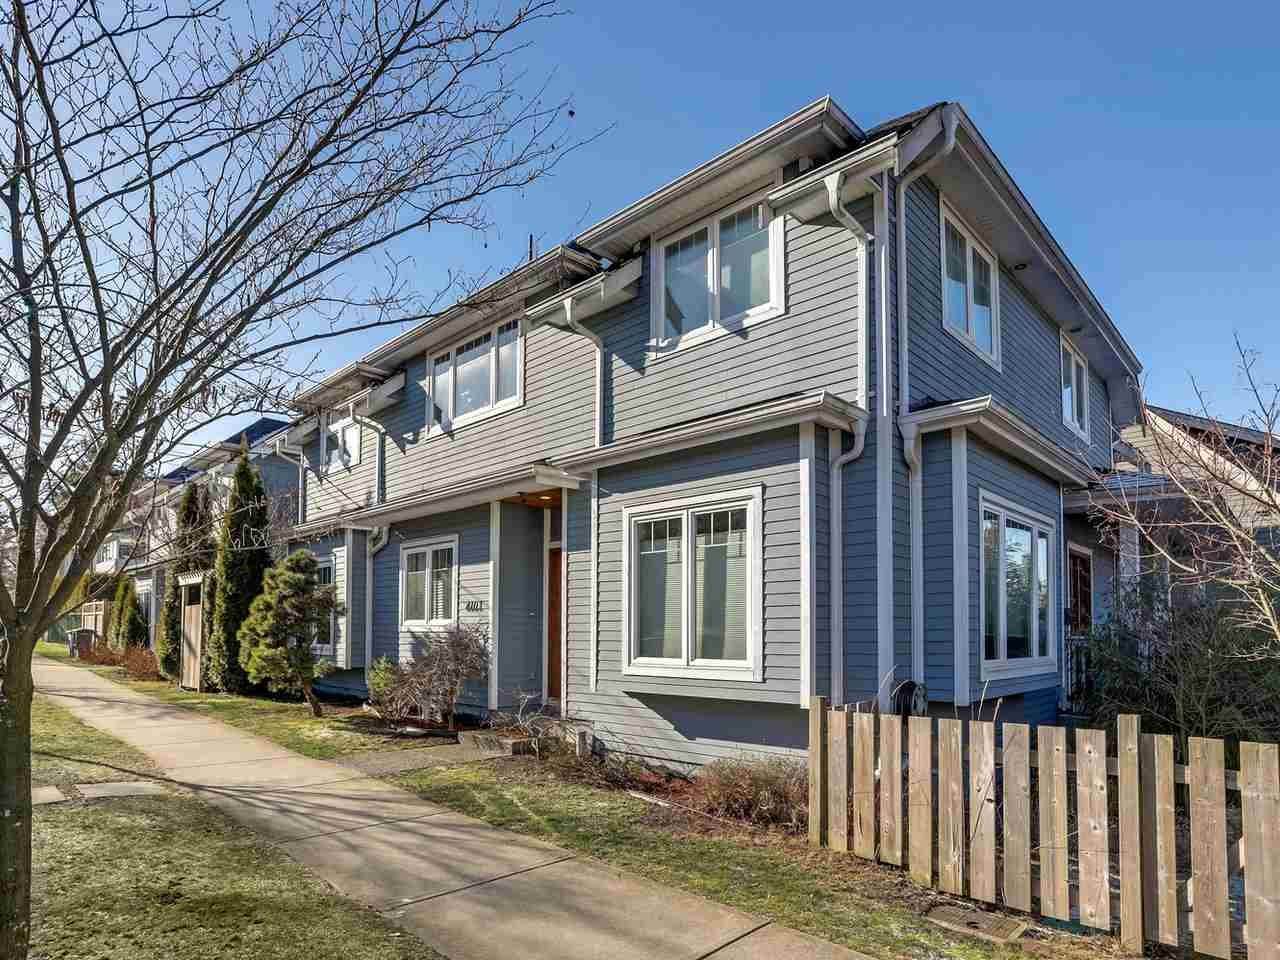 Main Photo: 4103 INVERNESS Street in Vancouver: Knight 1/2 Duplex for sale (Vancouver East)  : MLS®# R2339162